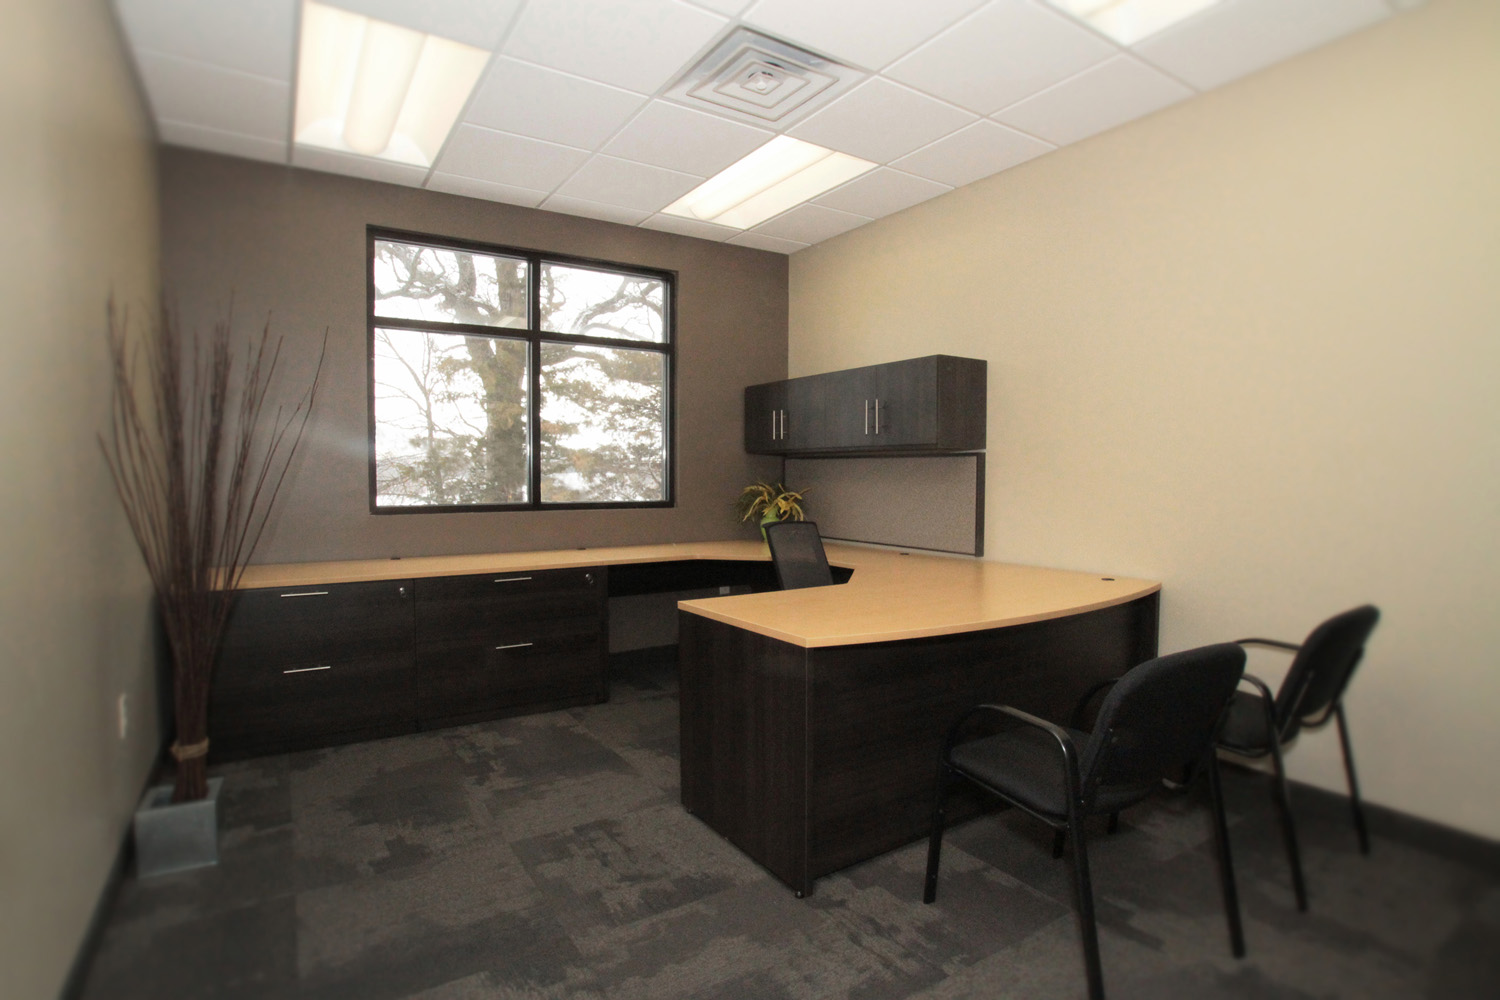 Office space design mankato new used office for Modern office space layout